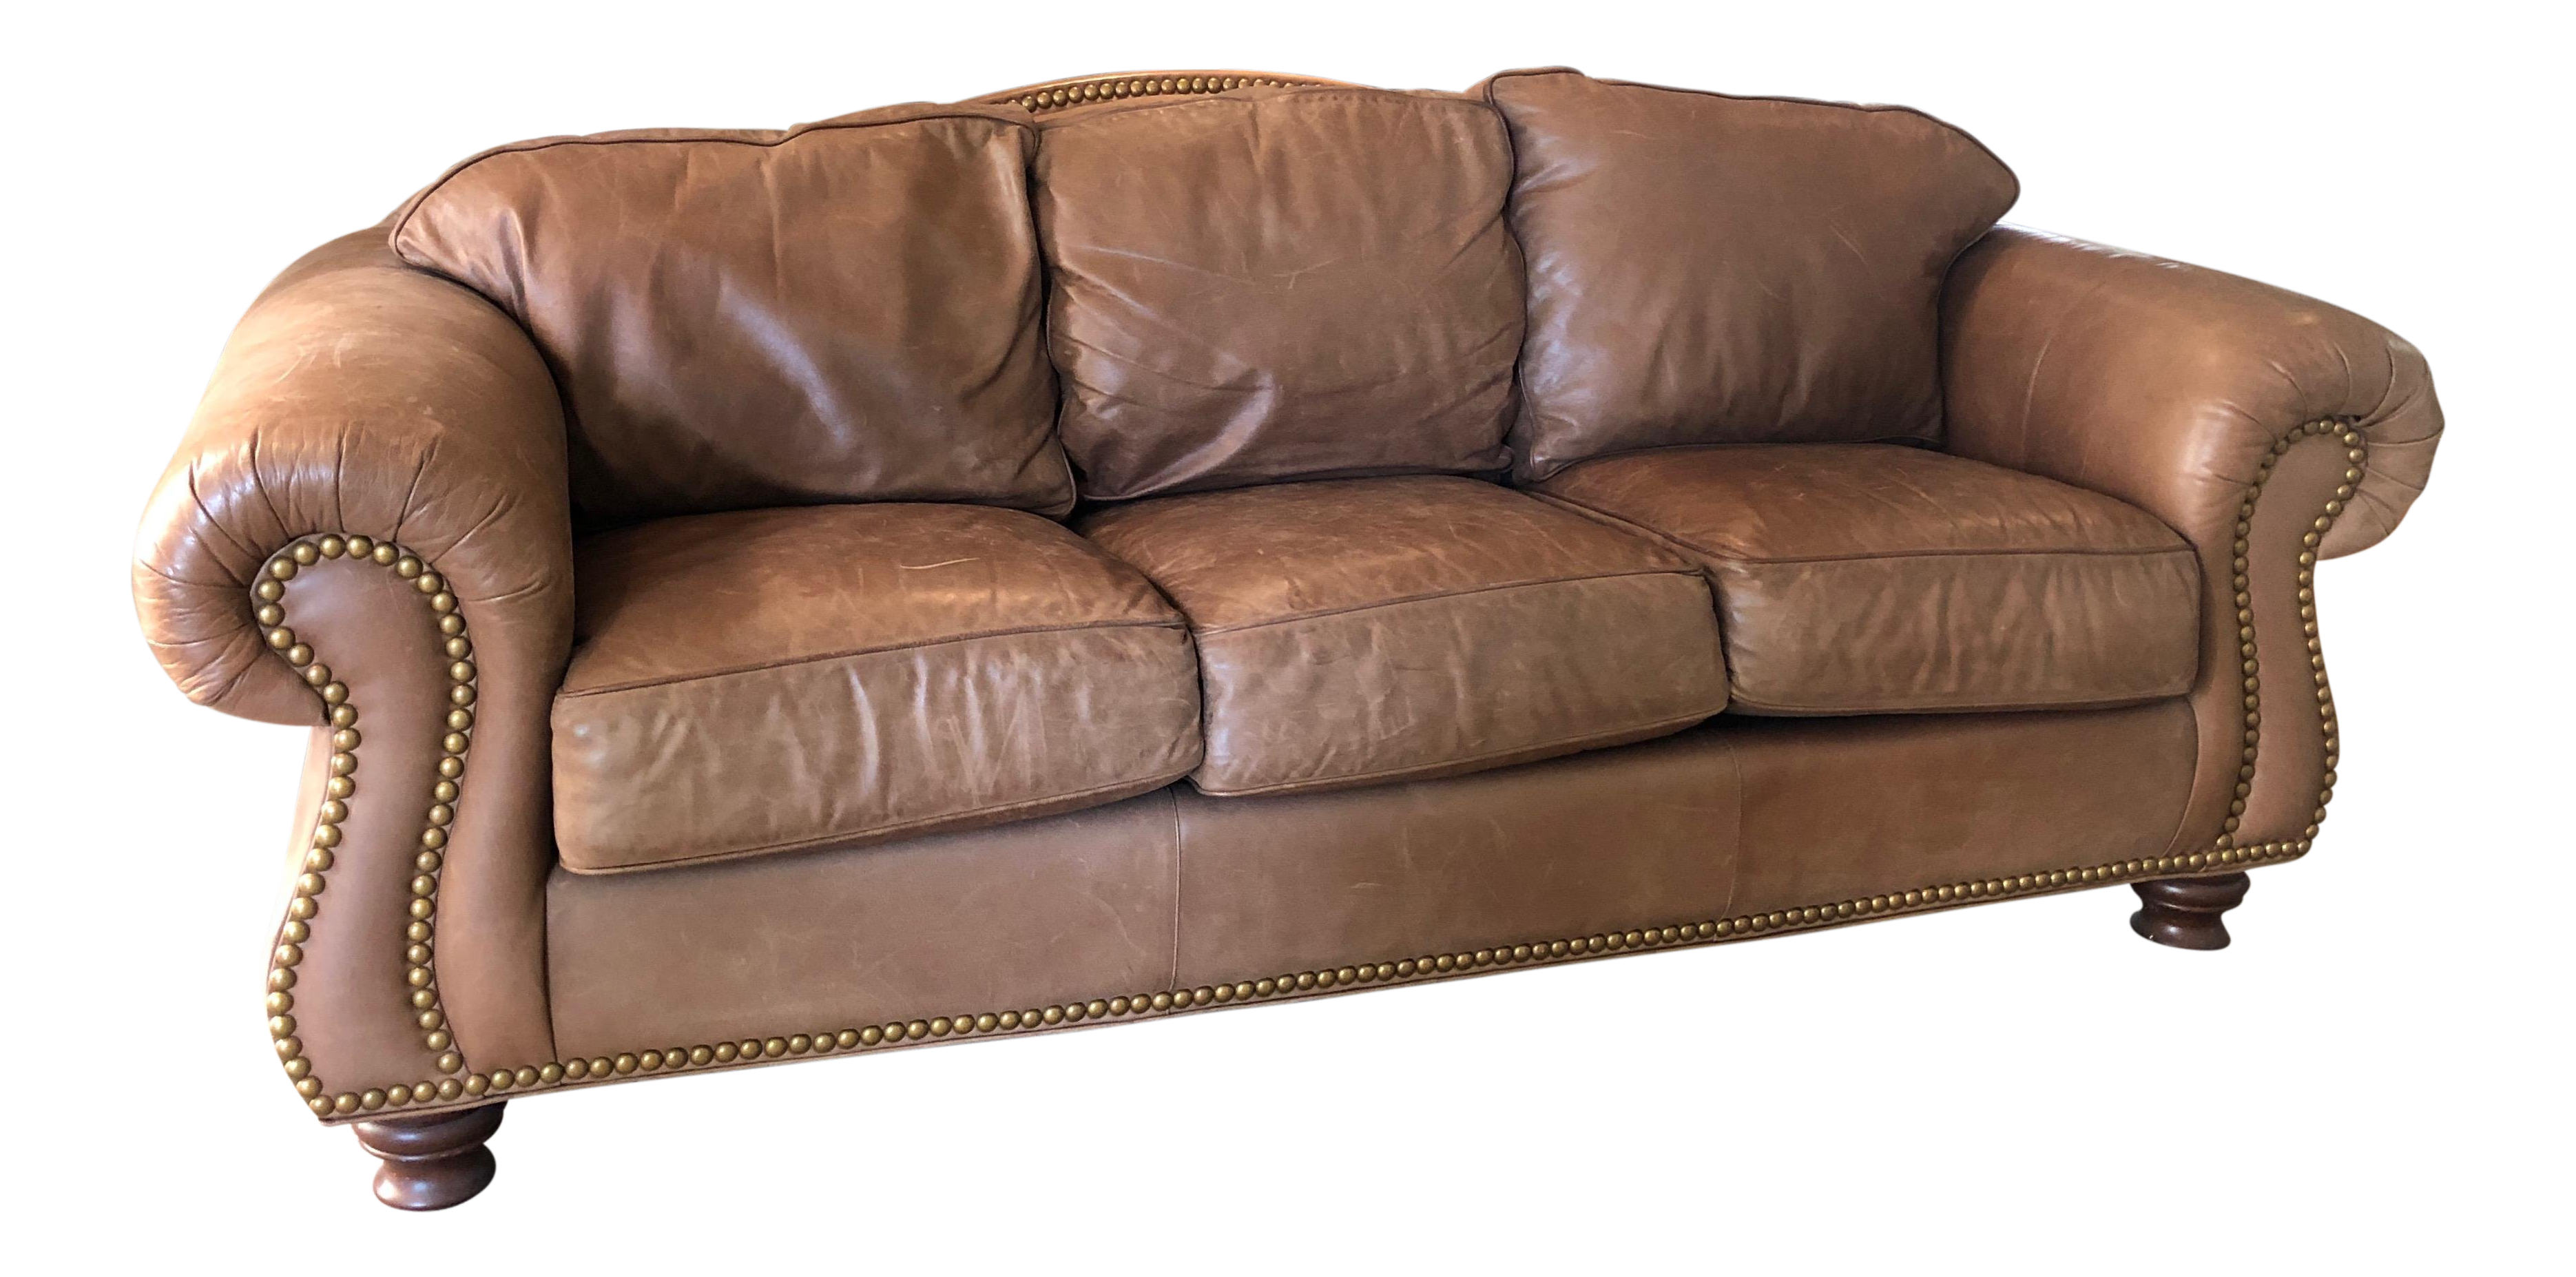 Superbe Drexel Heritage Rustic Brown Leather Couch With Brass Nailhead Trim